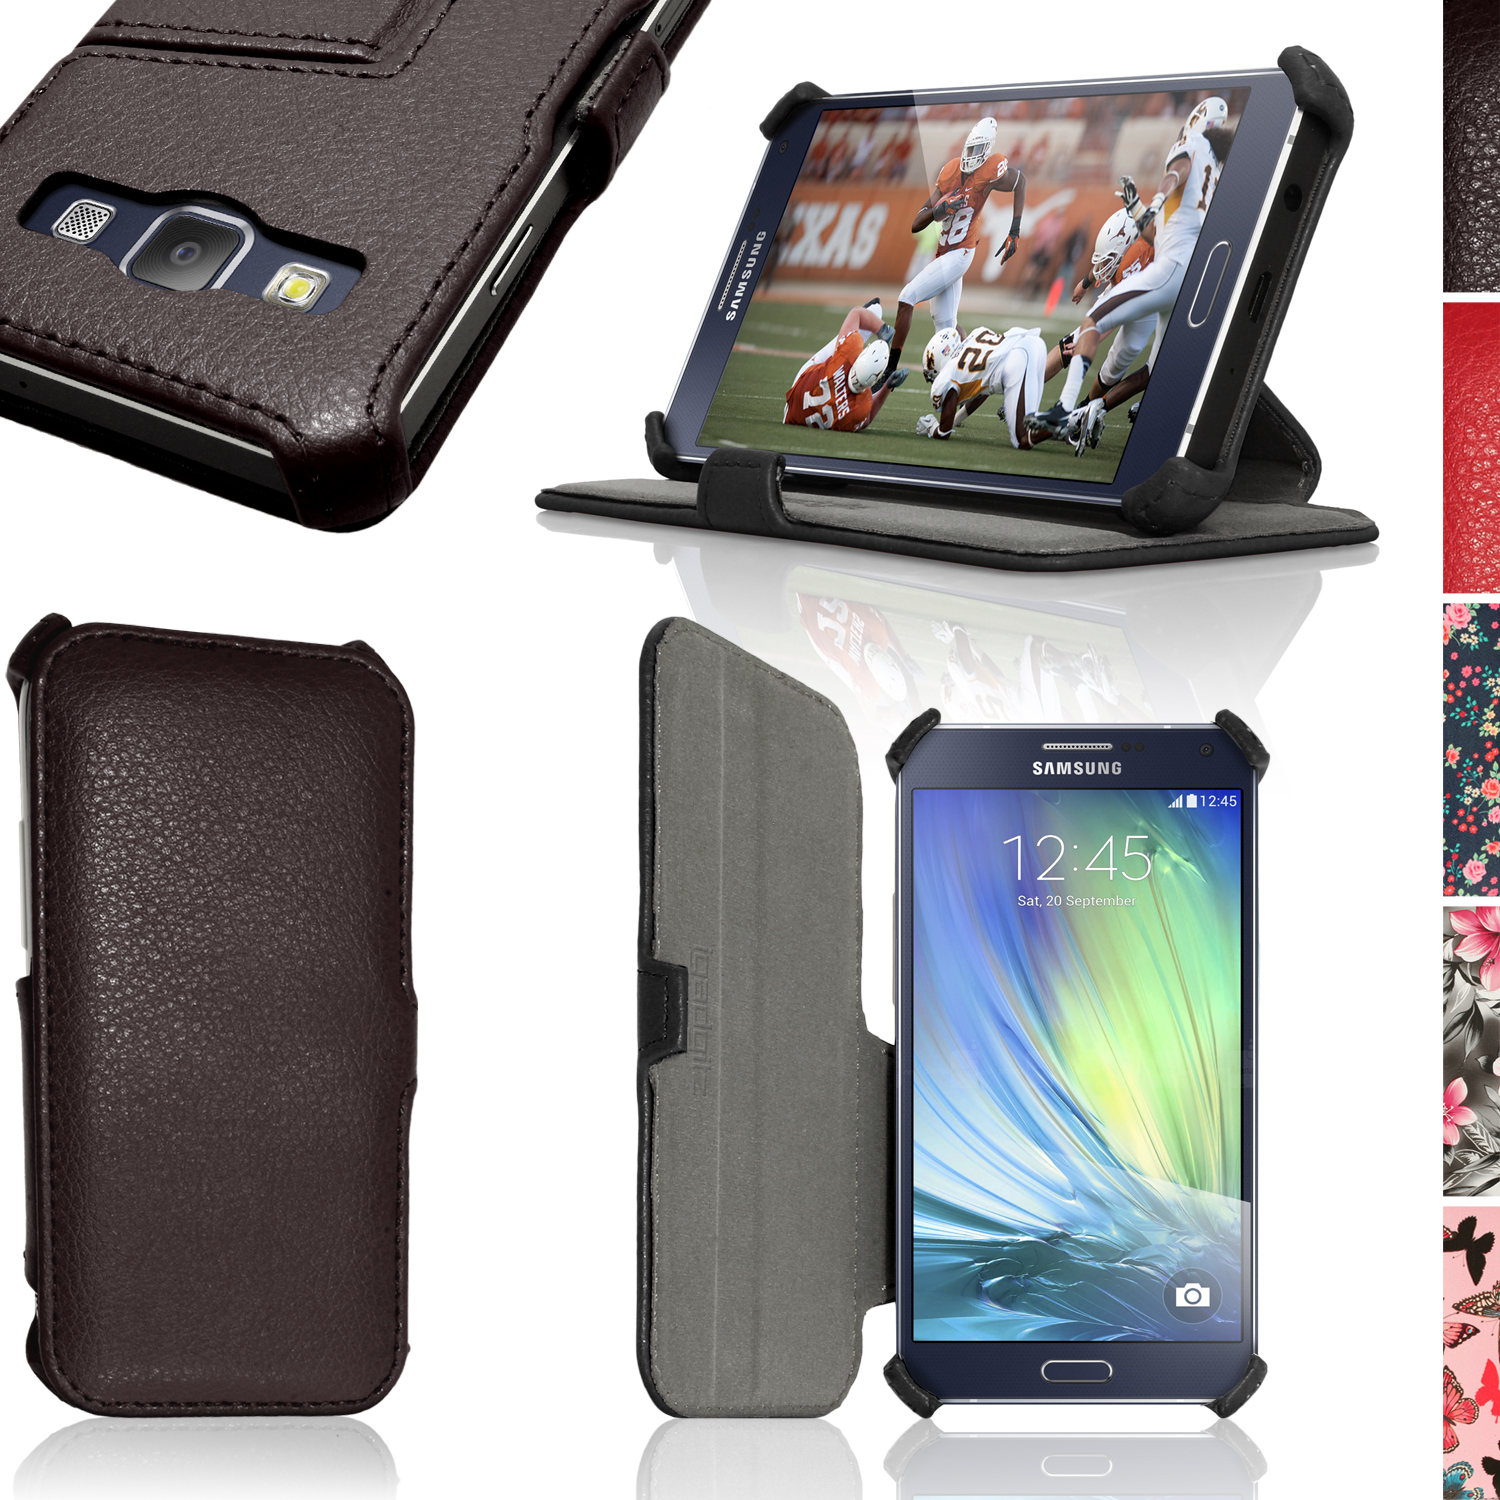 iGadgitz Premium Folio PU Leather Case Cover for Samsung Galaxy A3 + Viewing Stand + Sleep Wake + Screen Protector